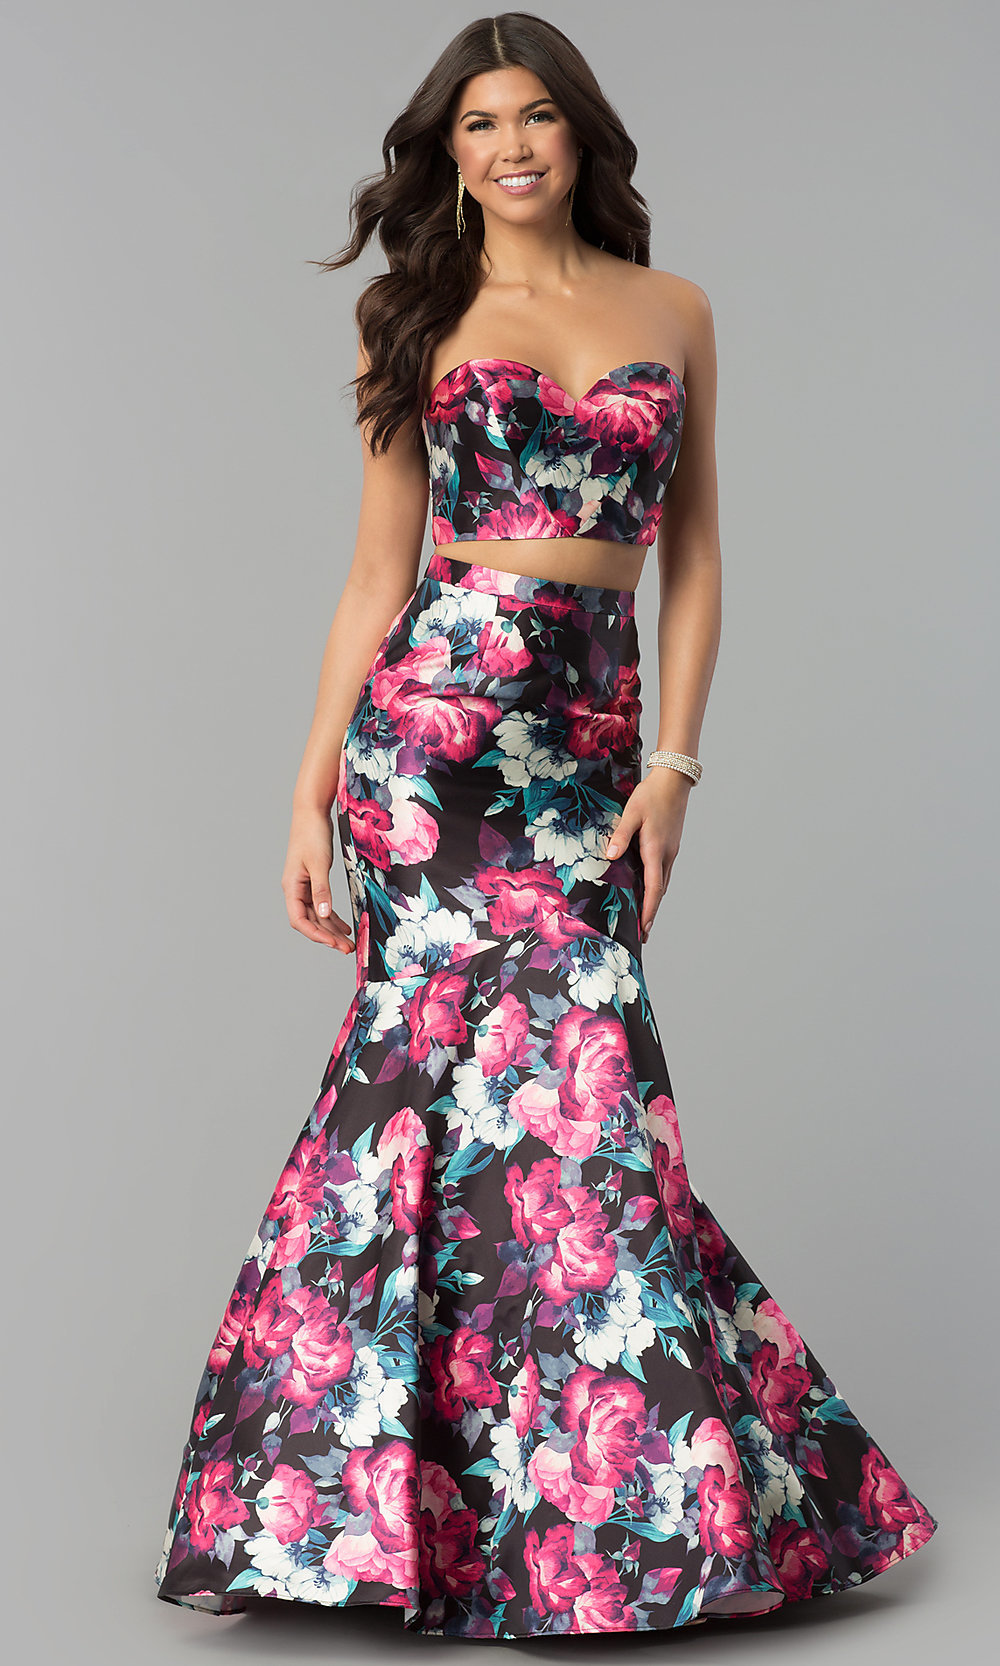 Floral Print Mermaid Two Piece Prom Dress Promgirl